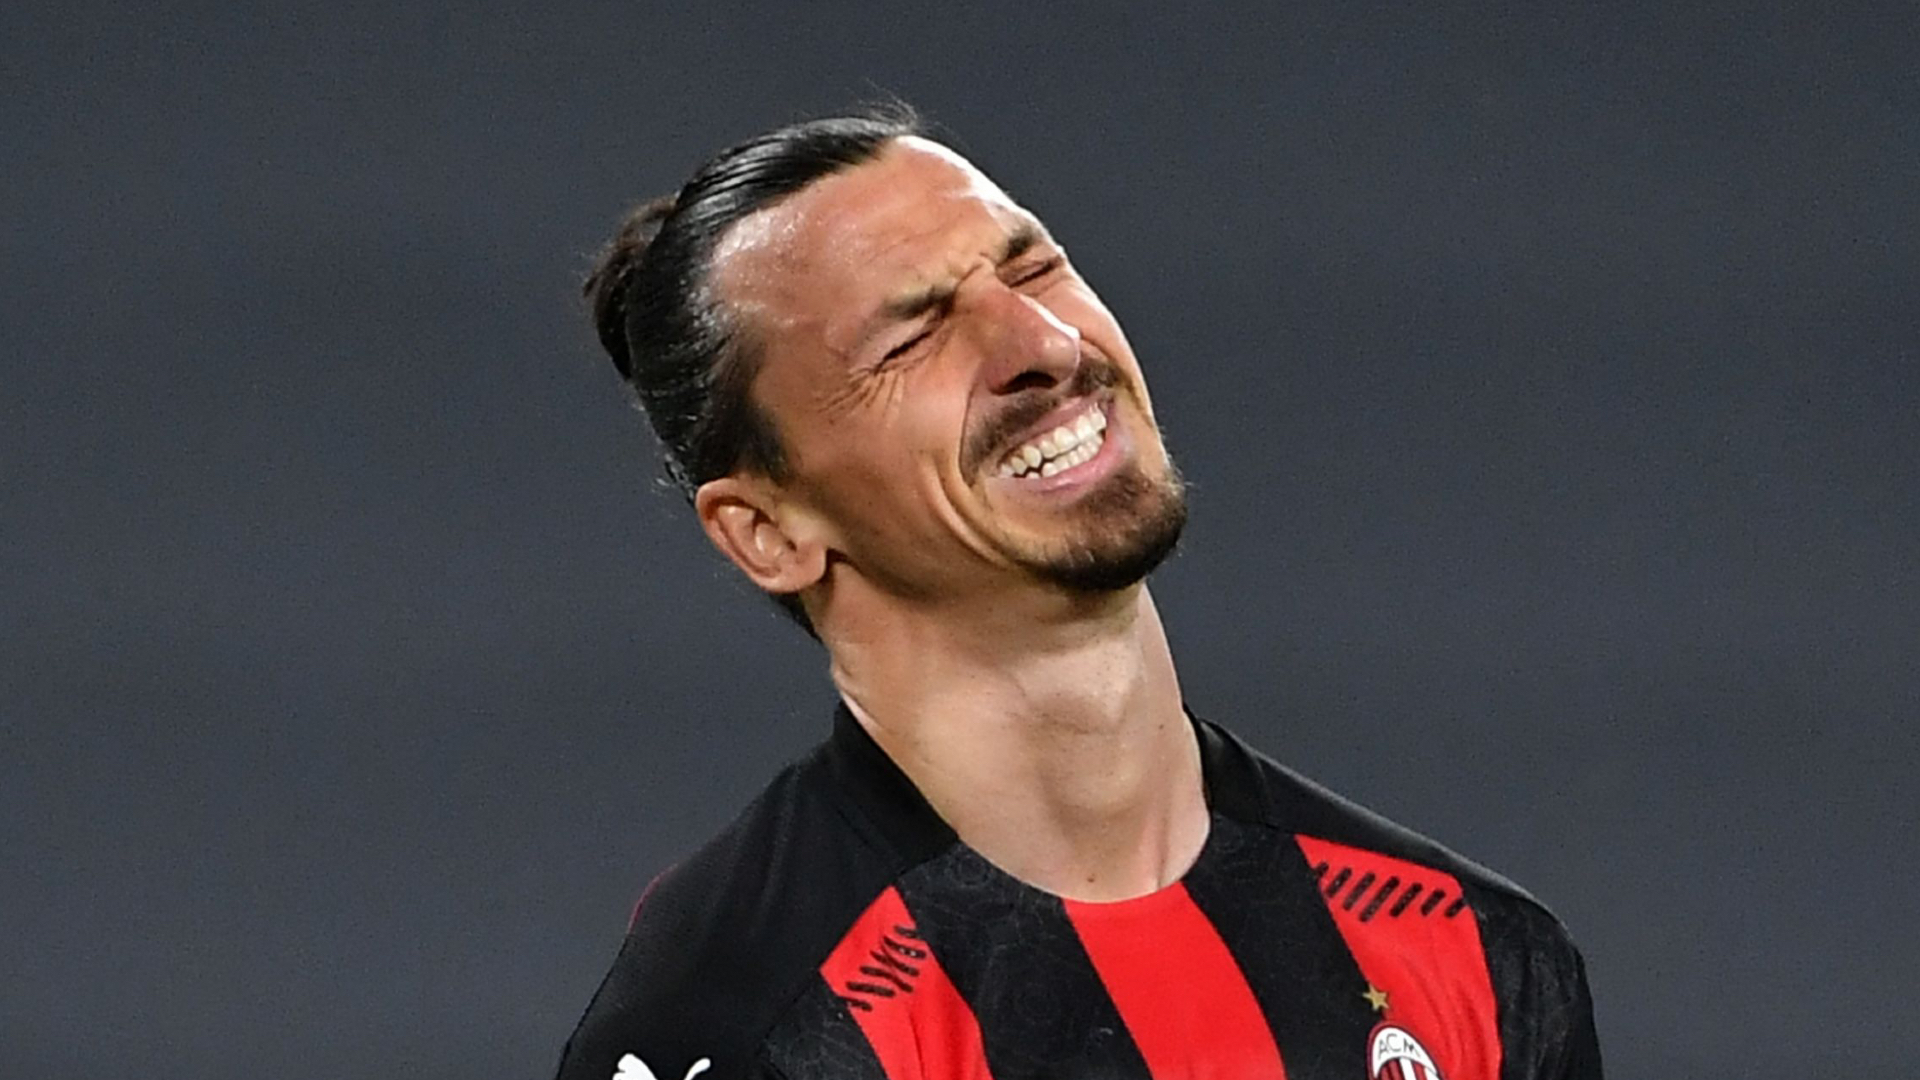 Why is Zlatan Ibrahimovic not playing for Sweden at Euro 2020?